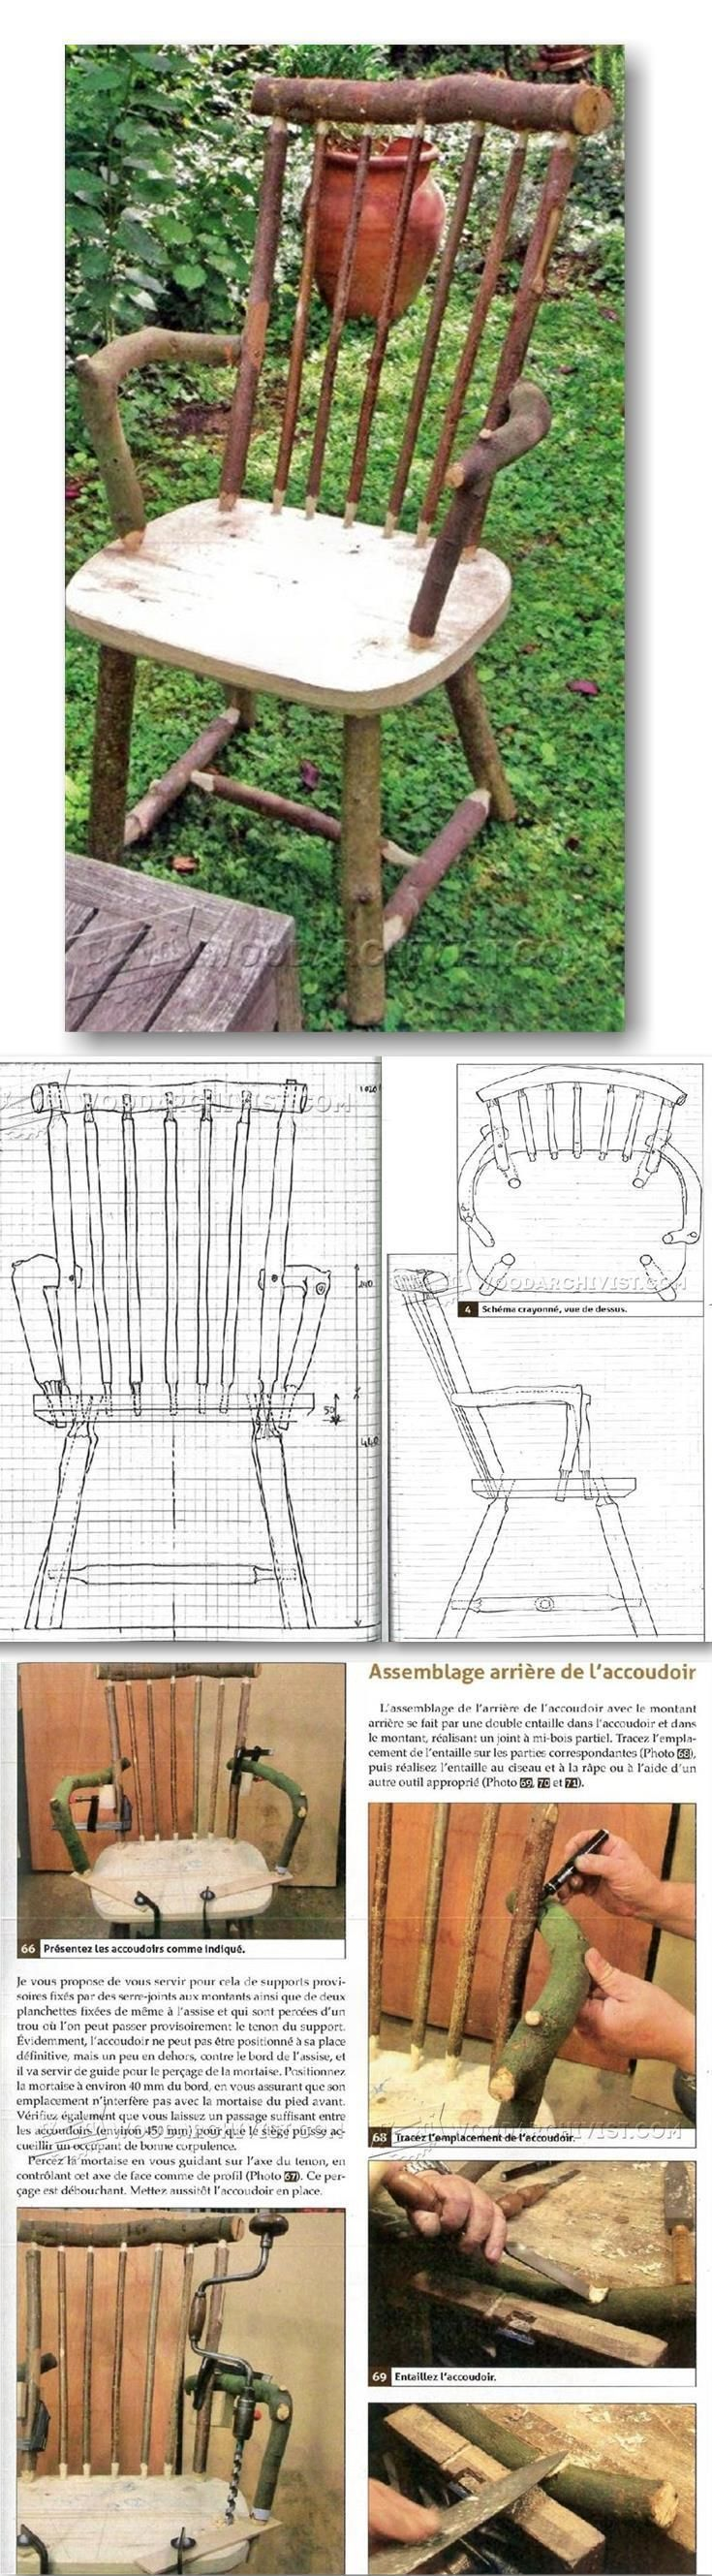 simple wooden chair plans. Rustic Chair Plans - Outdoor Furniture And Projects | WoodArchivist.com Simple Wooden P